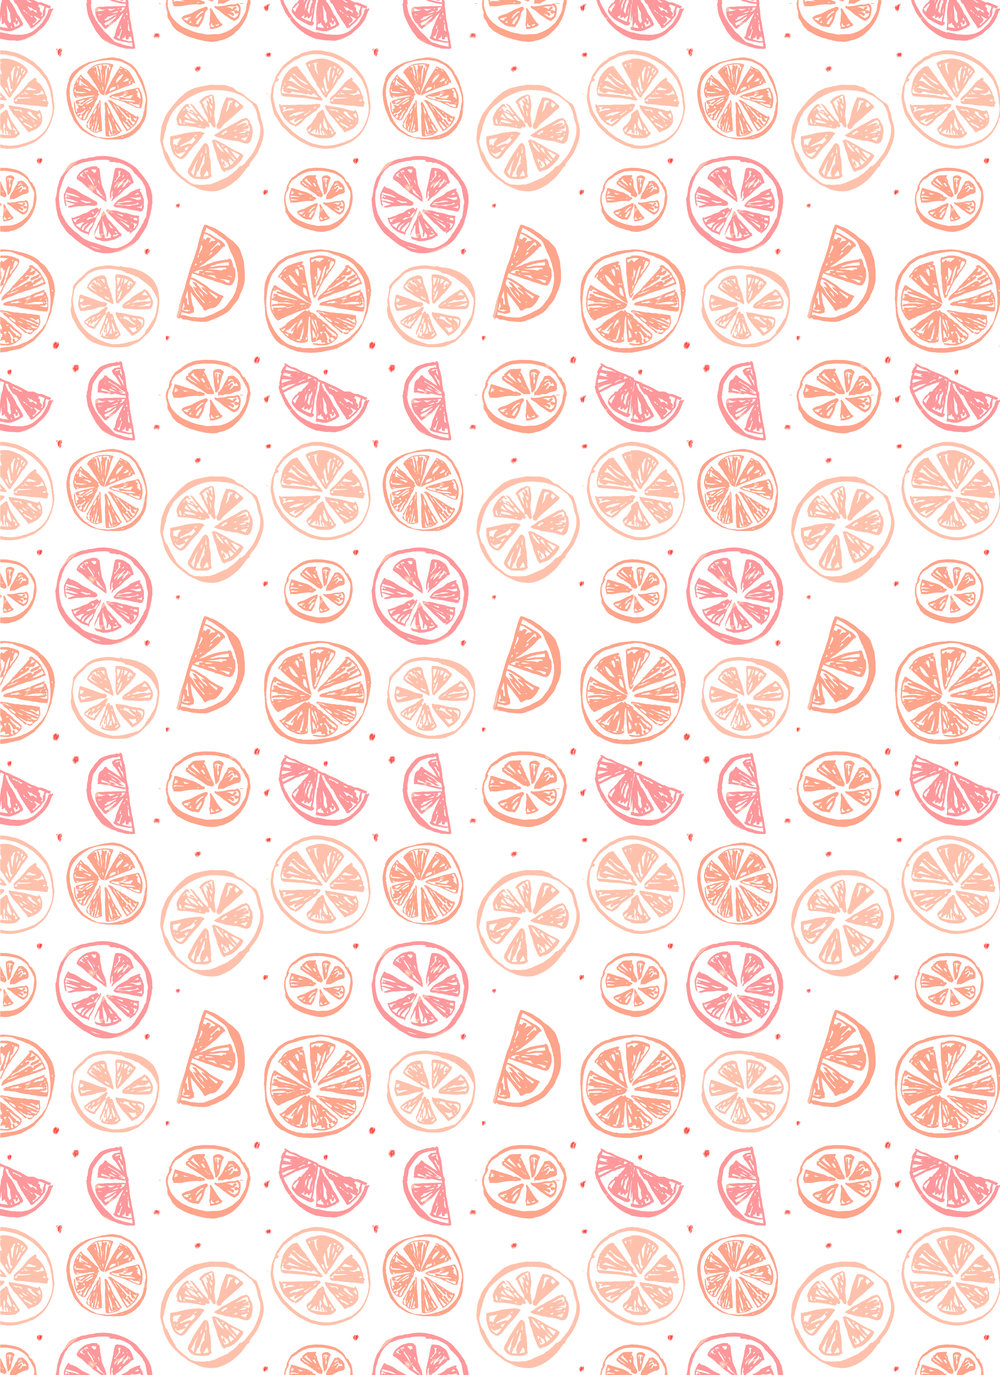 Paloma_Grapefruit_white_larger.jpg